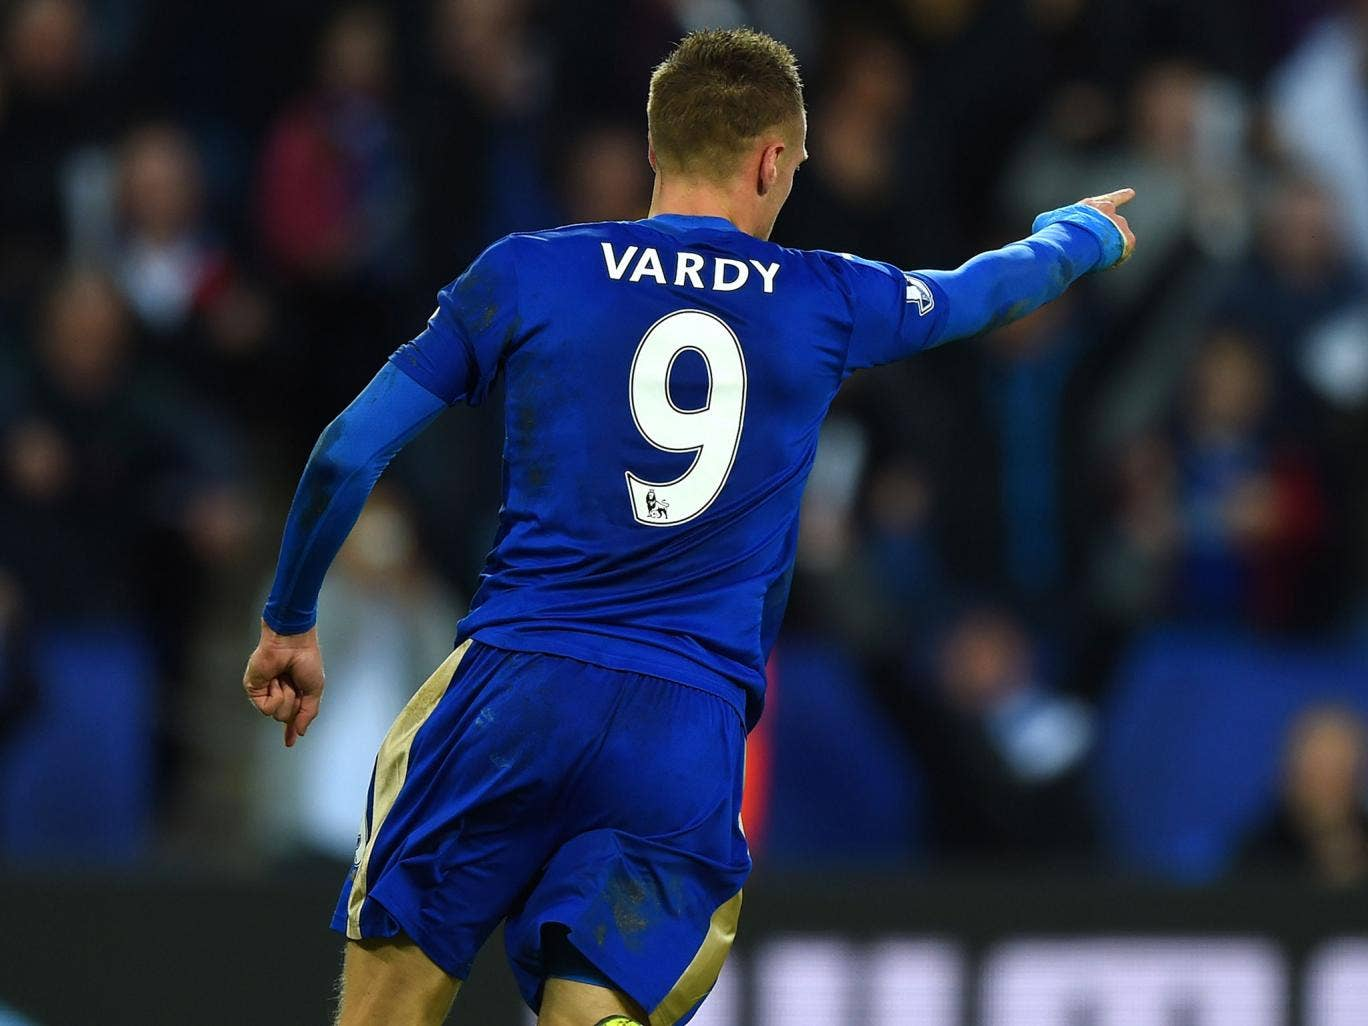 EL TOPIC DE LA PREMIER LEAGUE  Jamie-Vardy